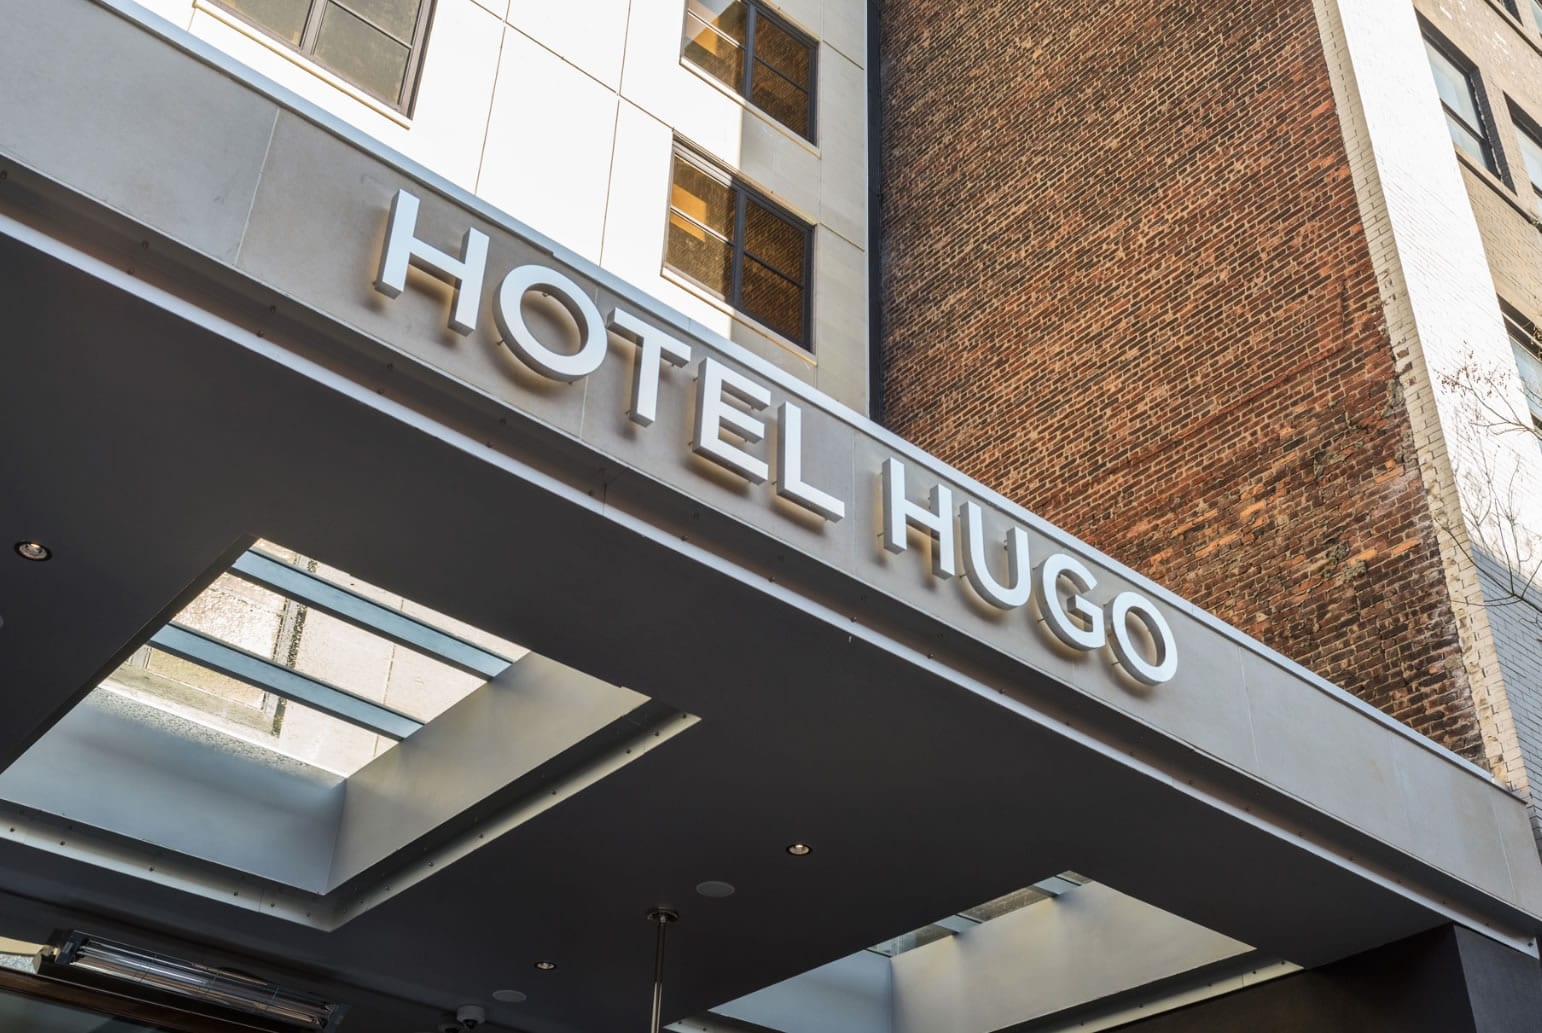 Hotel Hugo in SoHo